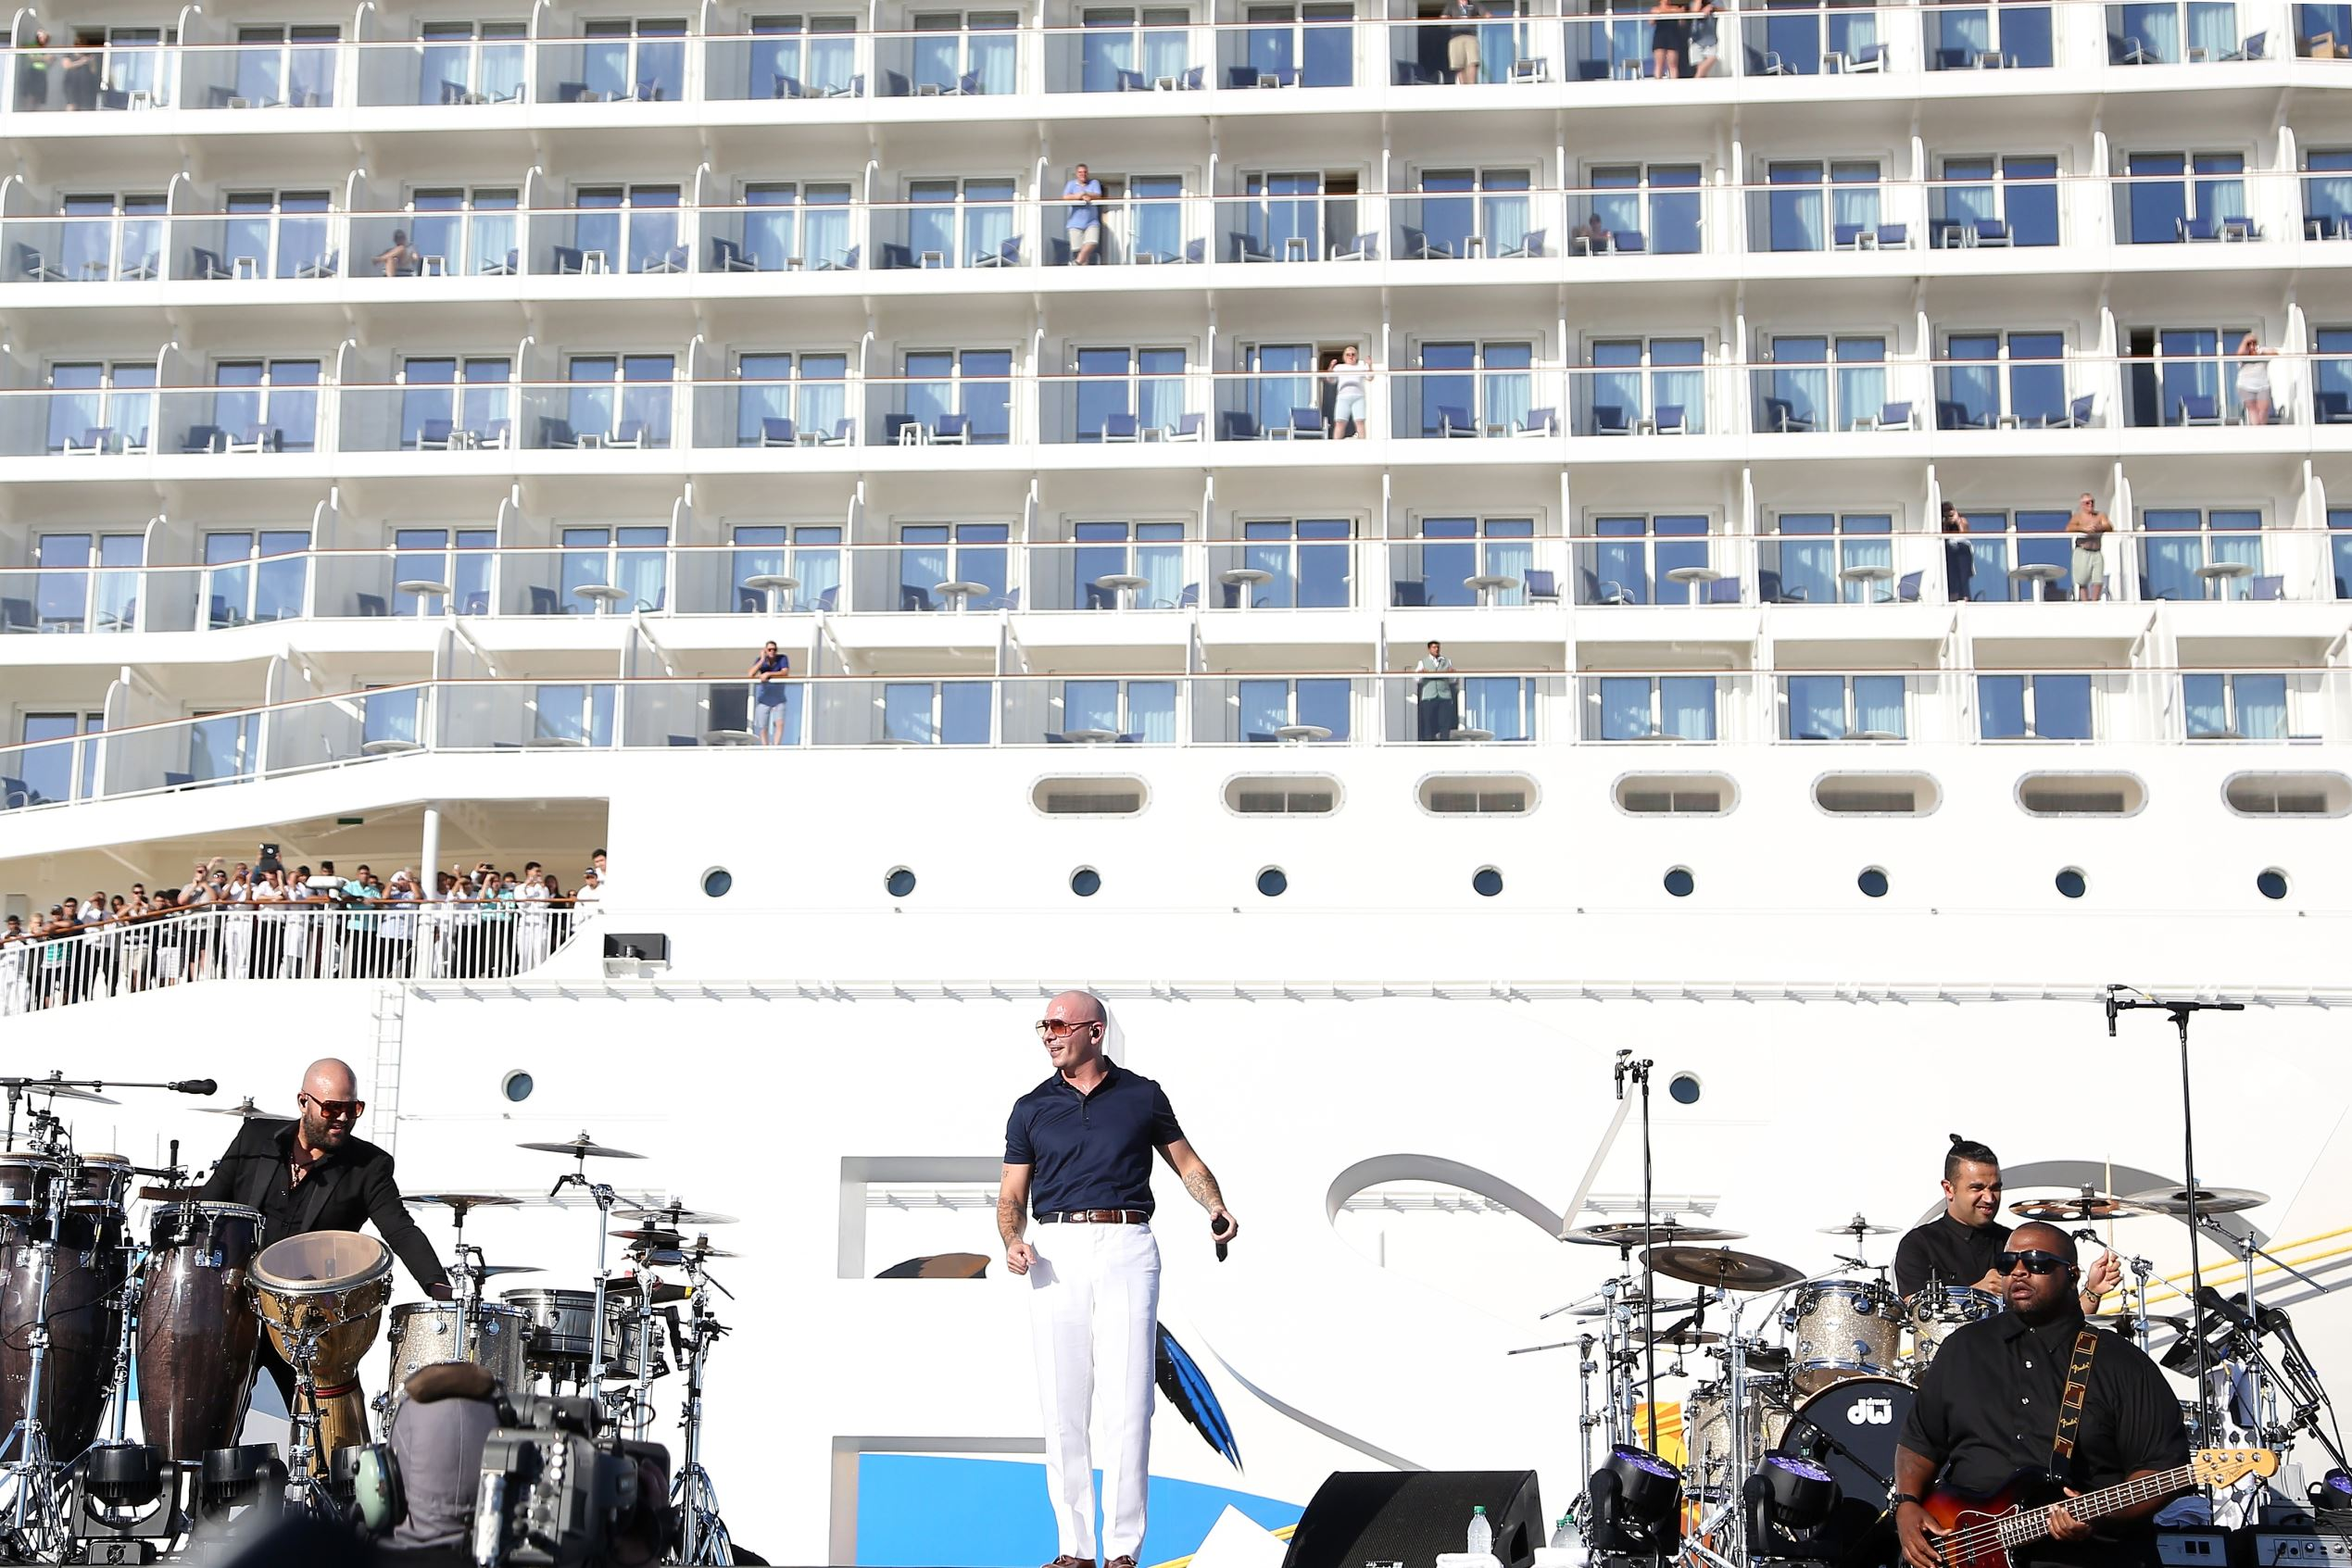 Slide 22 of 31: MIAMI, FL - NOVEMBER 09: Armando Christian Perez 'Pitbull' performs onstage at the Christening Ceremony for Norwegian Cruise Line's newest ship Norwegian Escape at Port Miami on November 9, 2015 in Miami, Florida. (Photo by Alexander Tamargo/Getty Images for Norwegian Cruise Line)